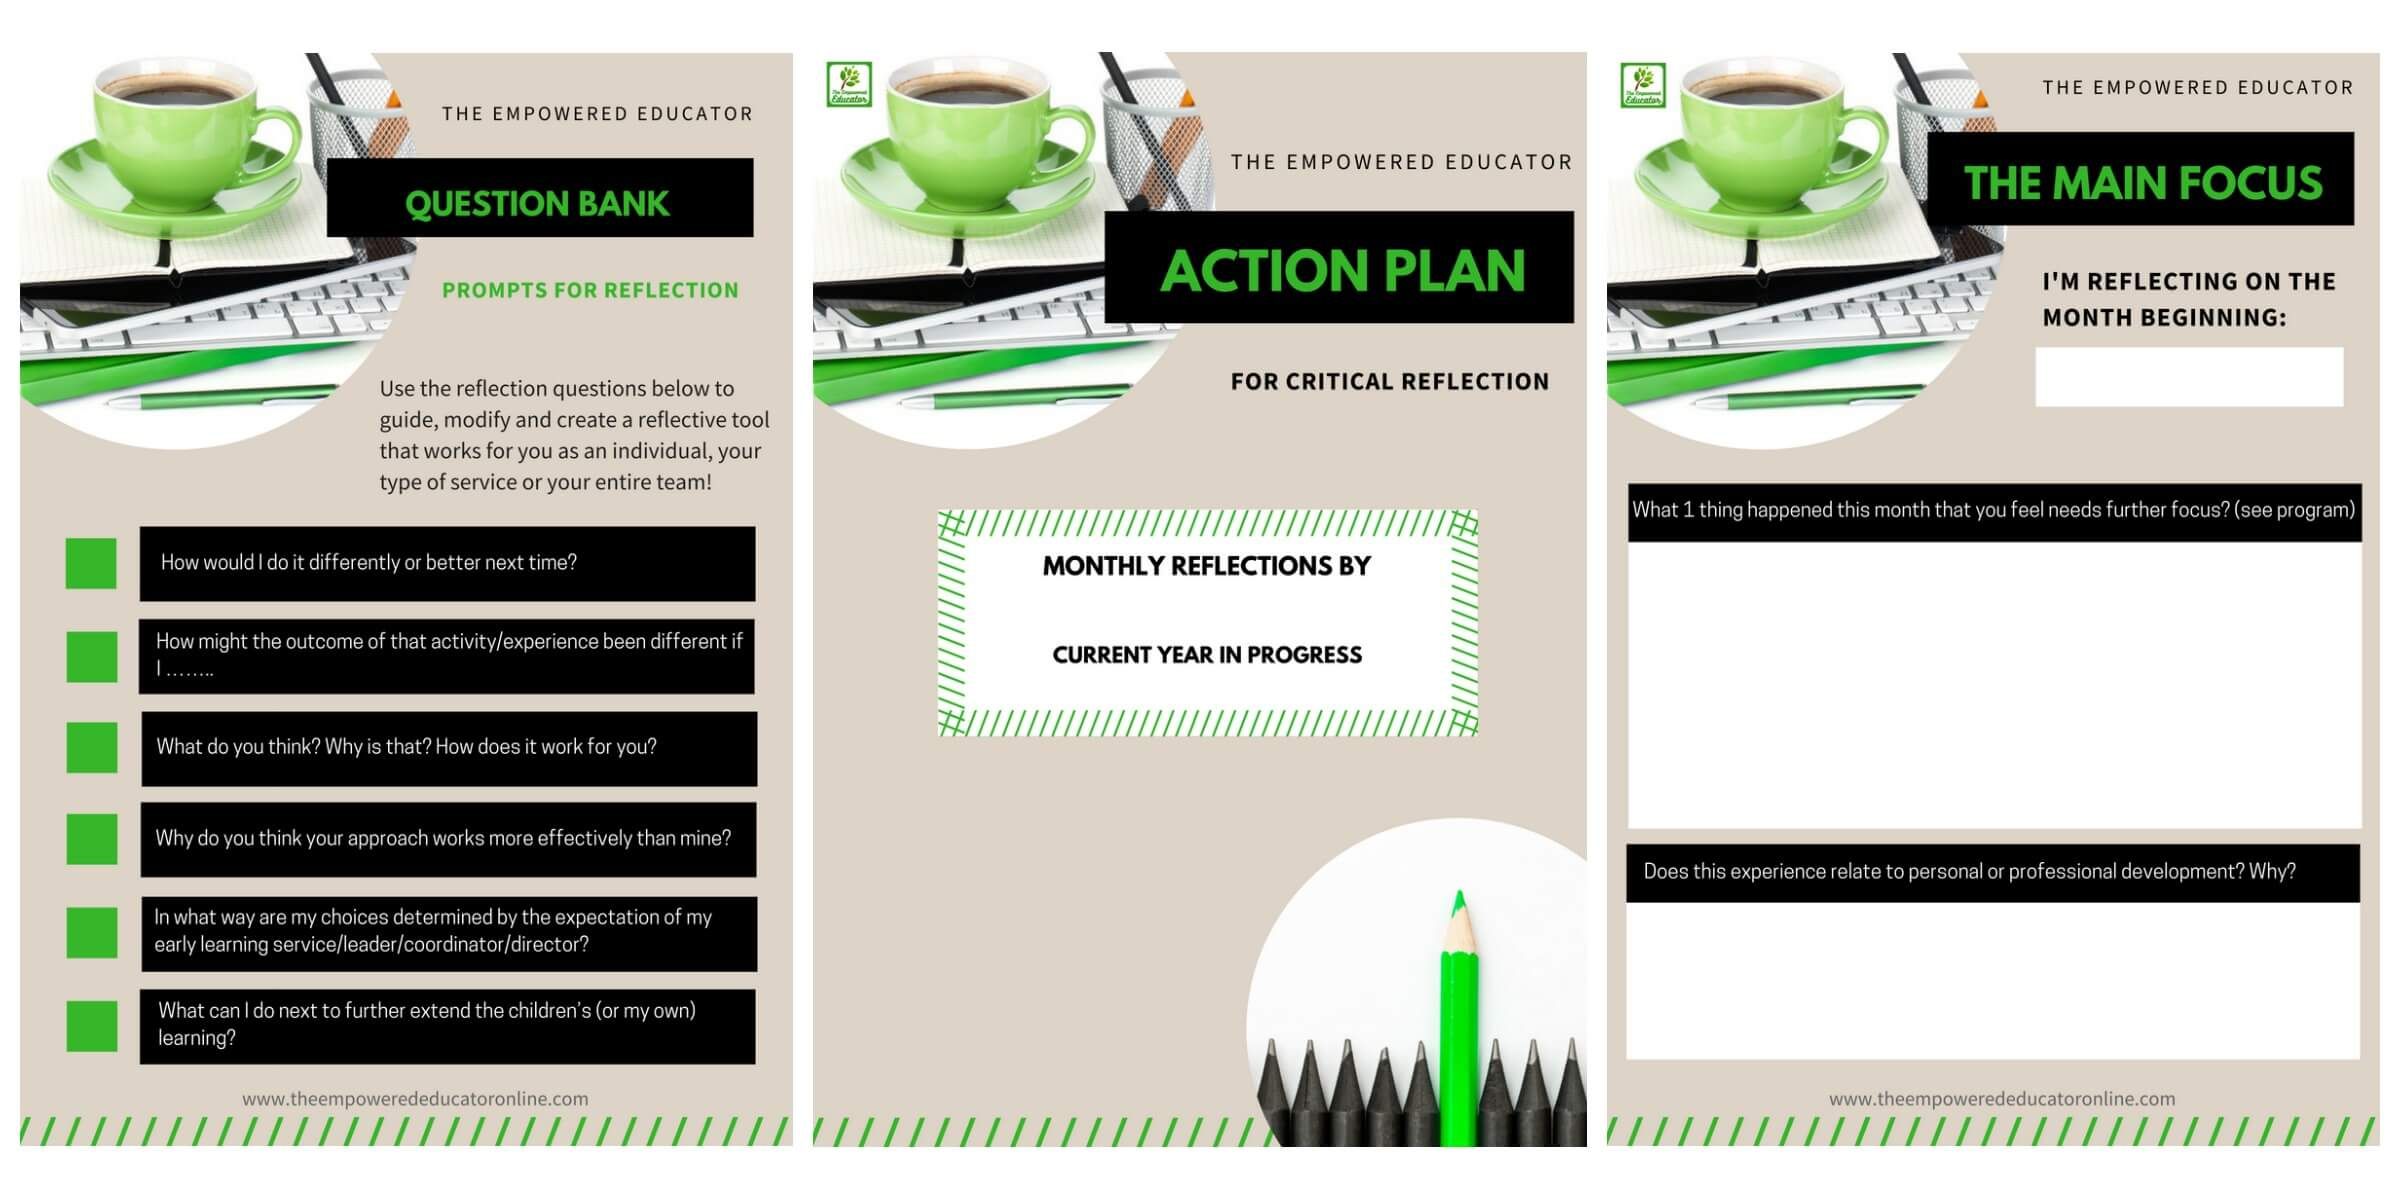 Stop overthinking critical reflection and just get started using these simple explanations, tips, question prompts and free action guide download!